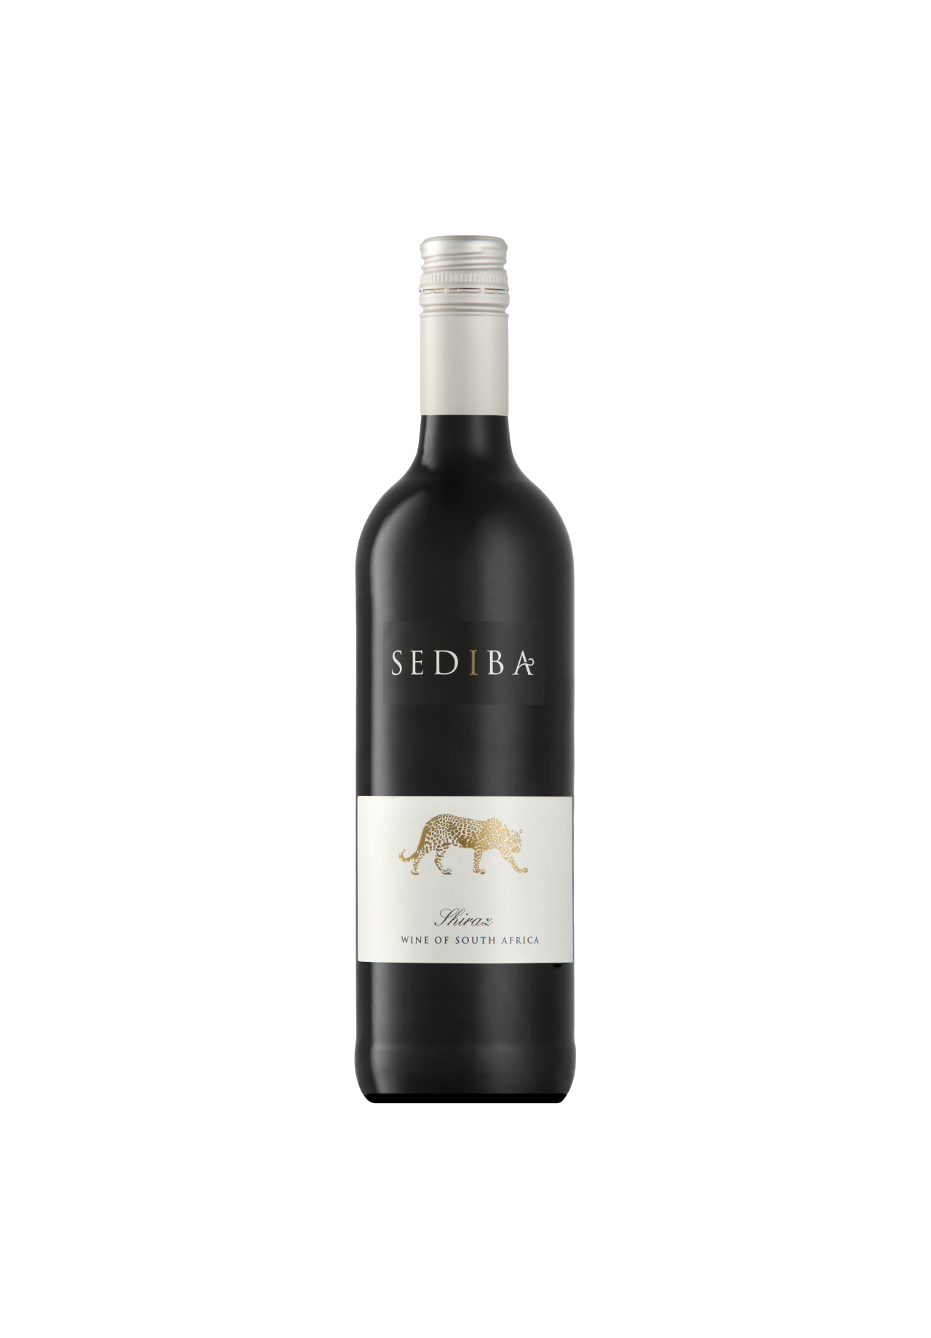 Sediba South African Shiraz 2015